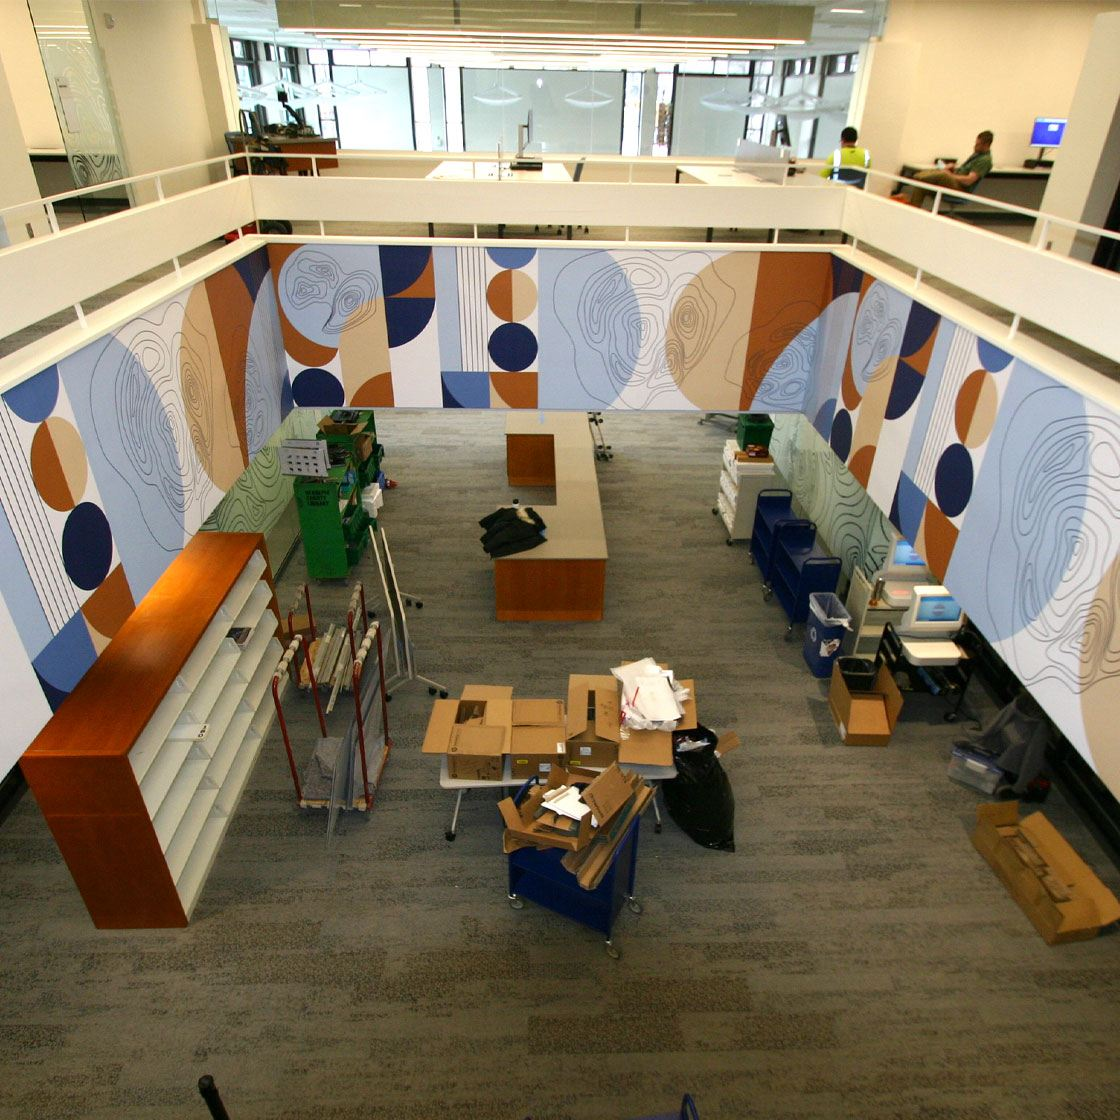 North Regional Library study area from above on a balcony with a decorative design on the balcony walls.